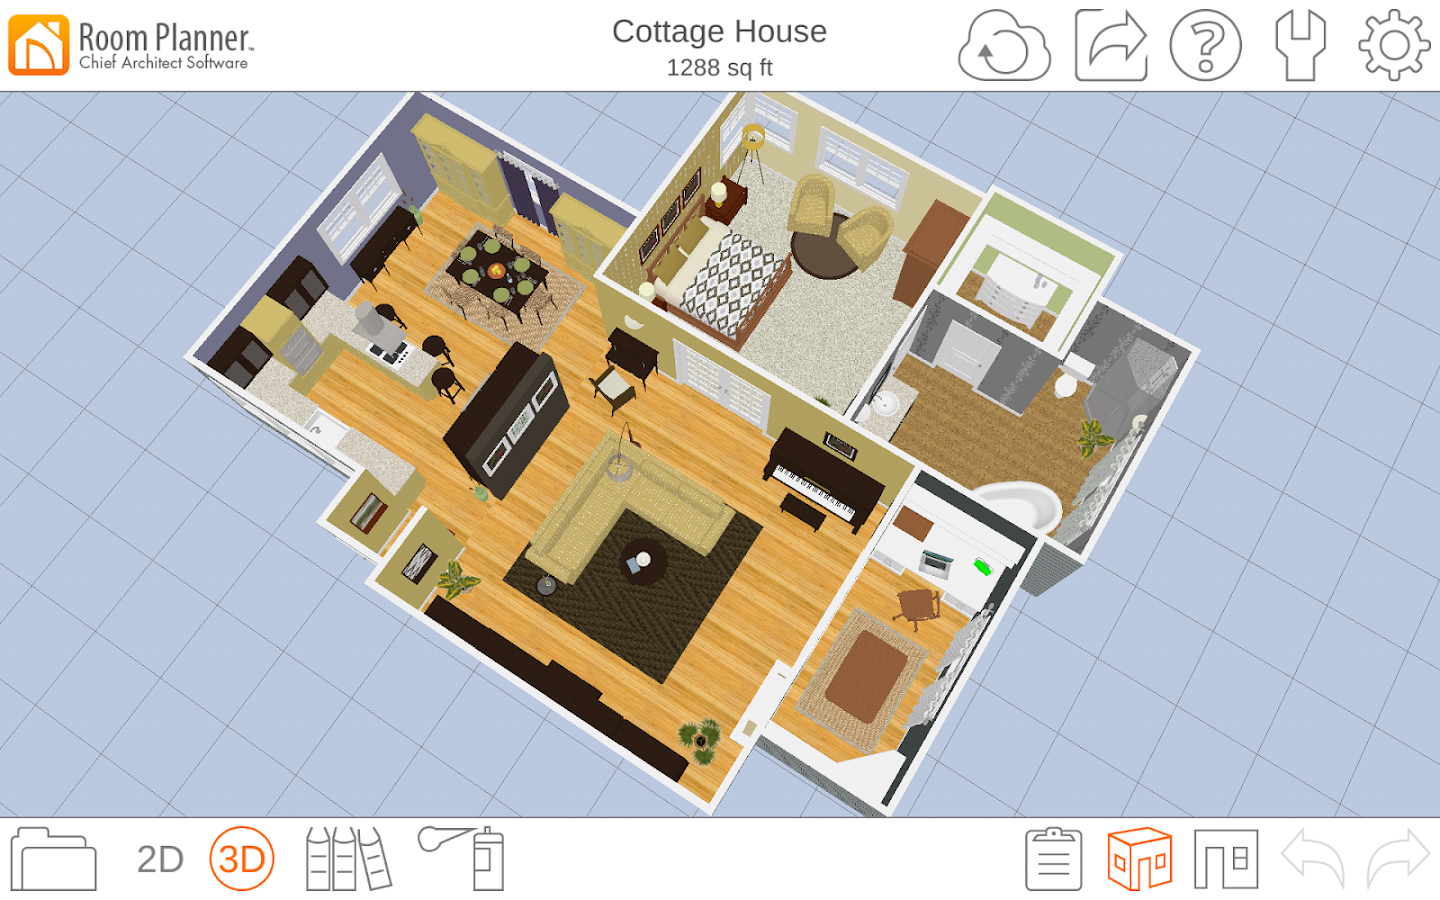 Room planner home design android apps on google play for Architect home plans